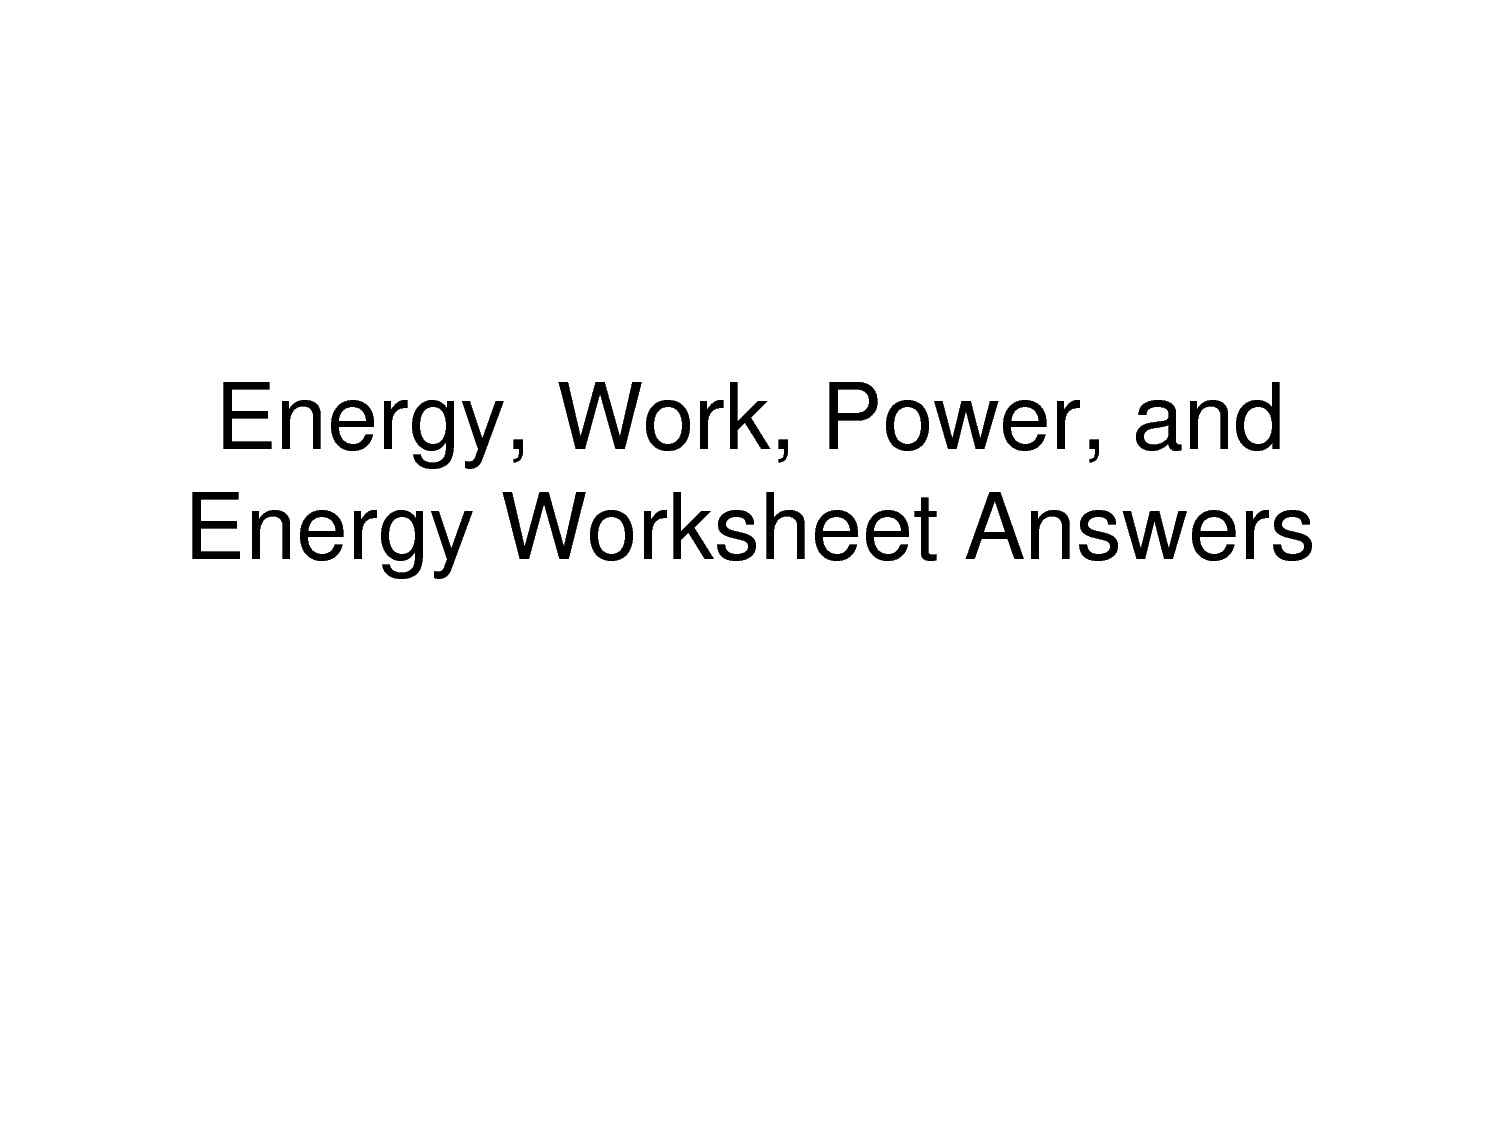 16 Best Images of Force And Energy Worksheets